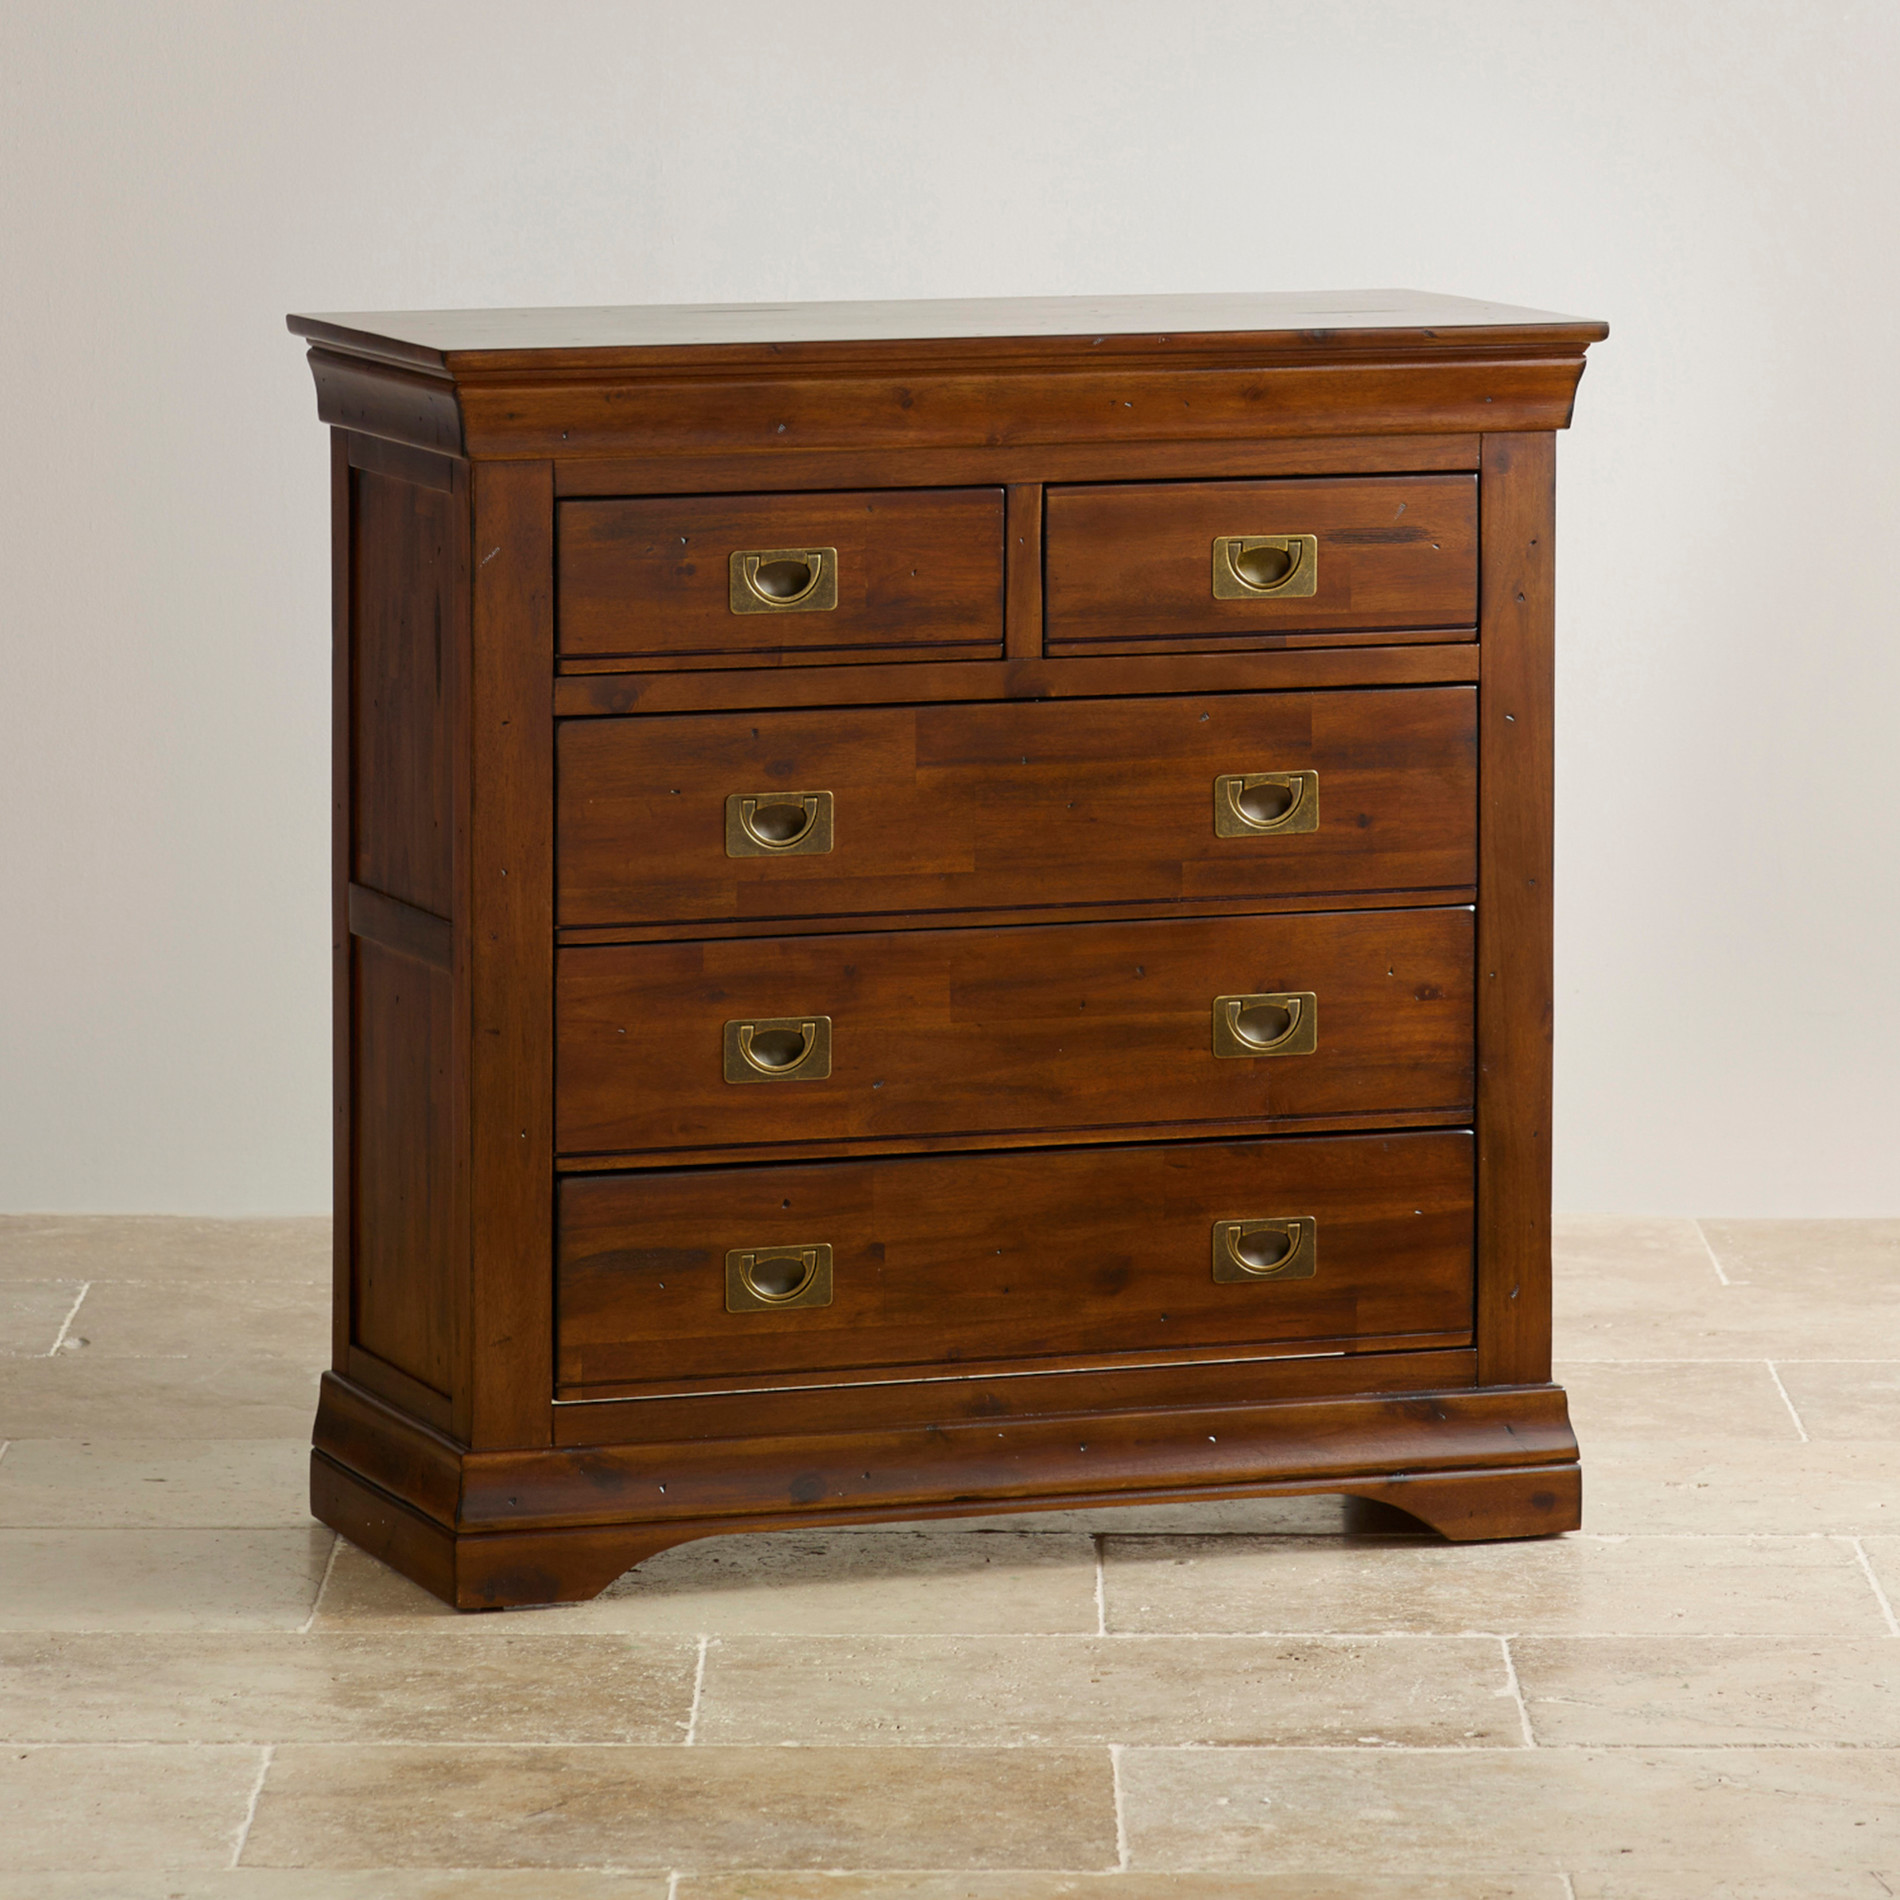 victoria 3 2 chest of drawers in acacia oak furniture land. Black Bedroom Furniture Sets. Home Design Ideas